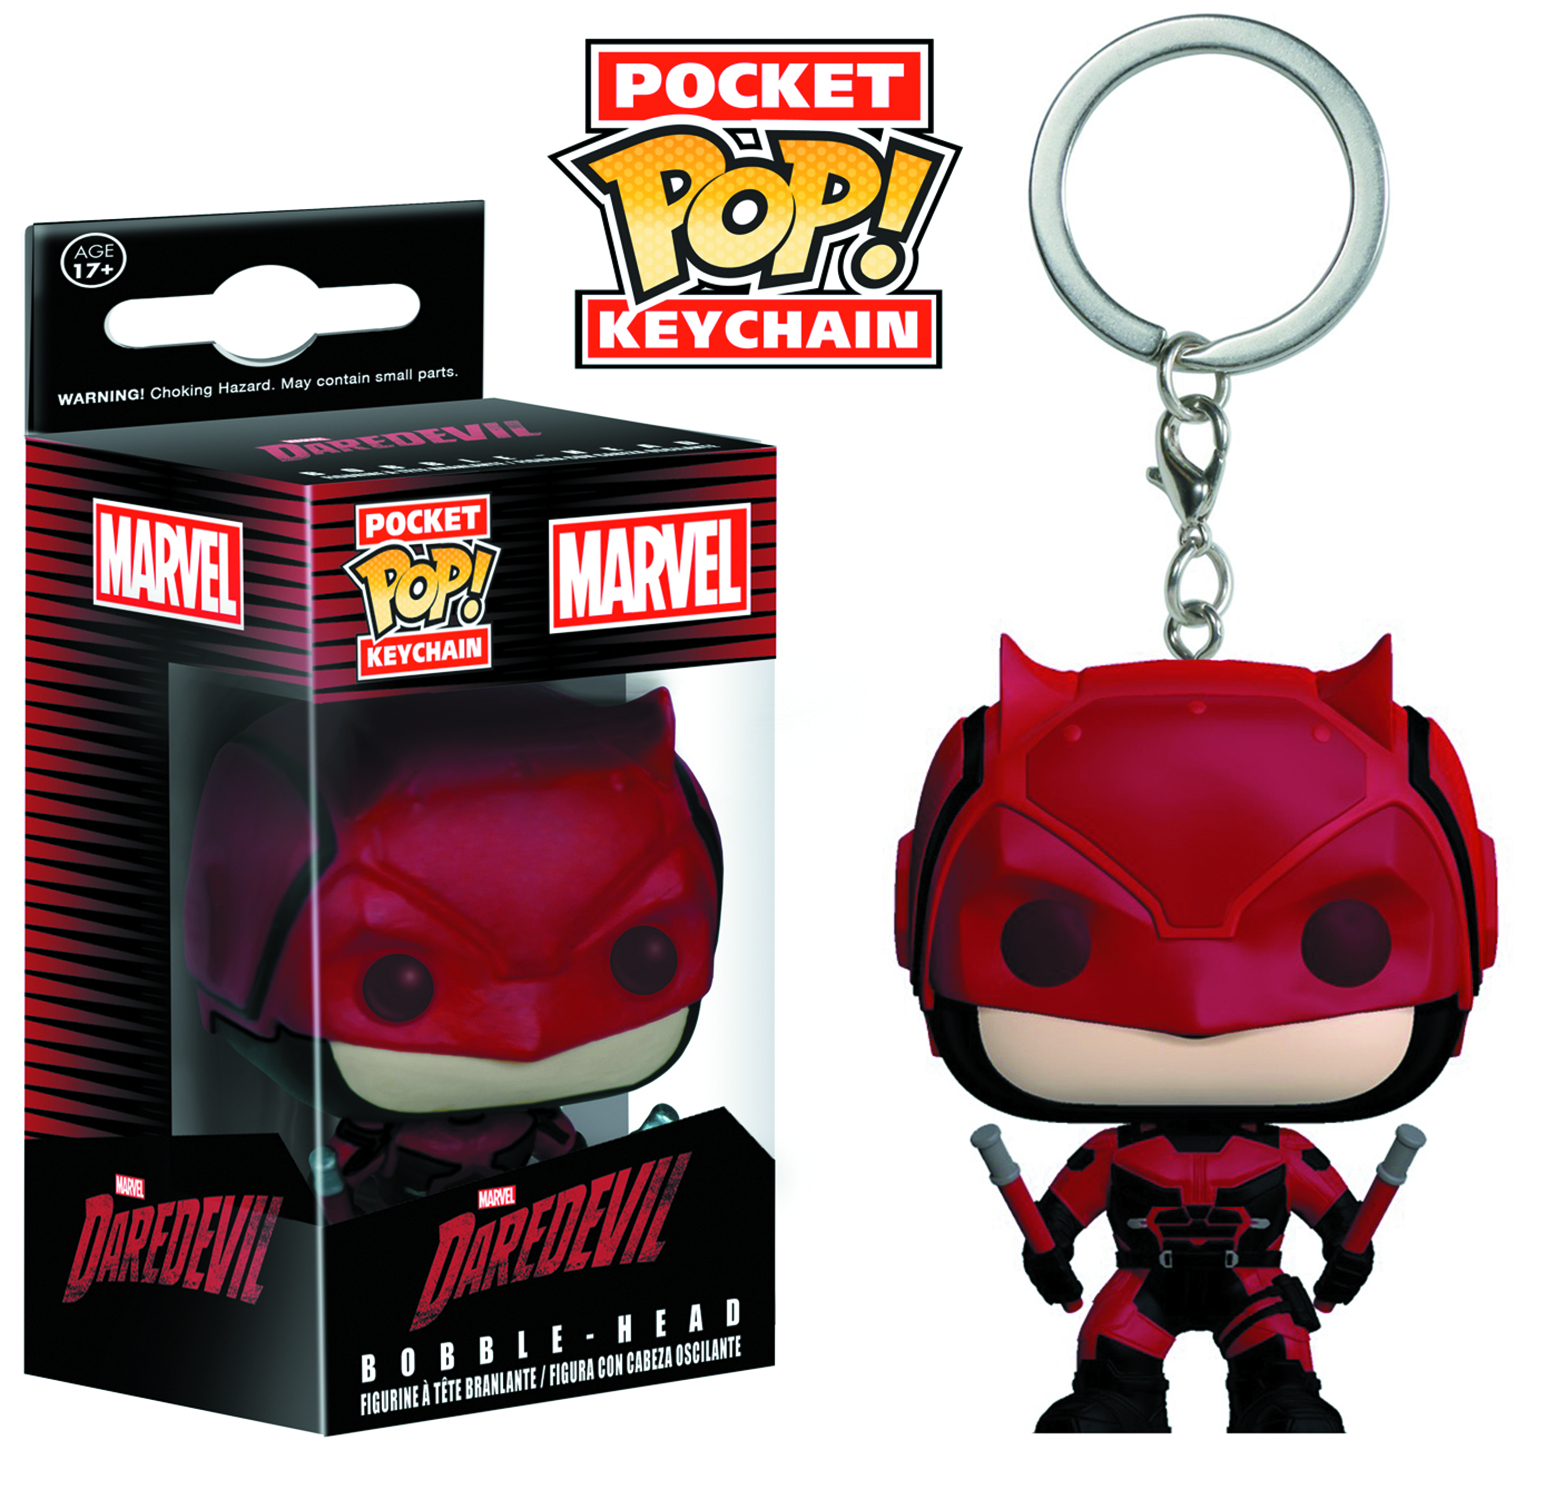 POCKET POP DAREDEVIL TV DAREDEVIL RED SUIT VIN FIG KEYCHAIN